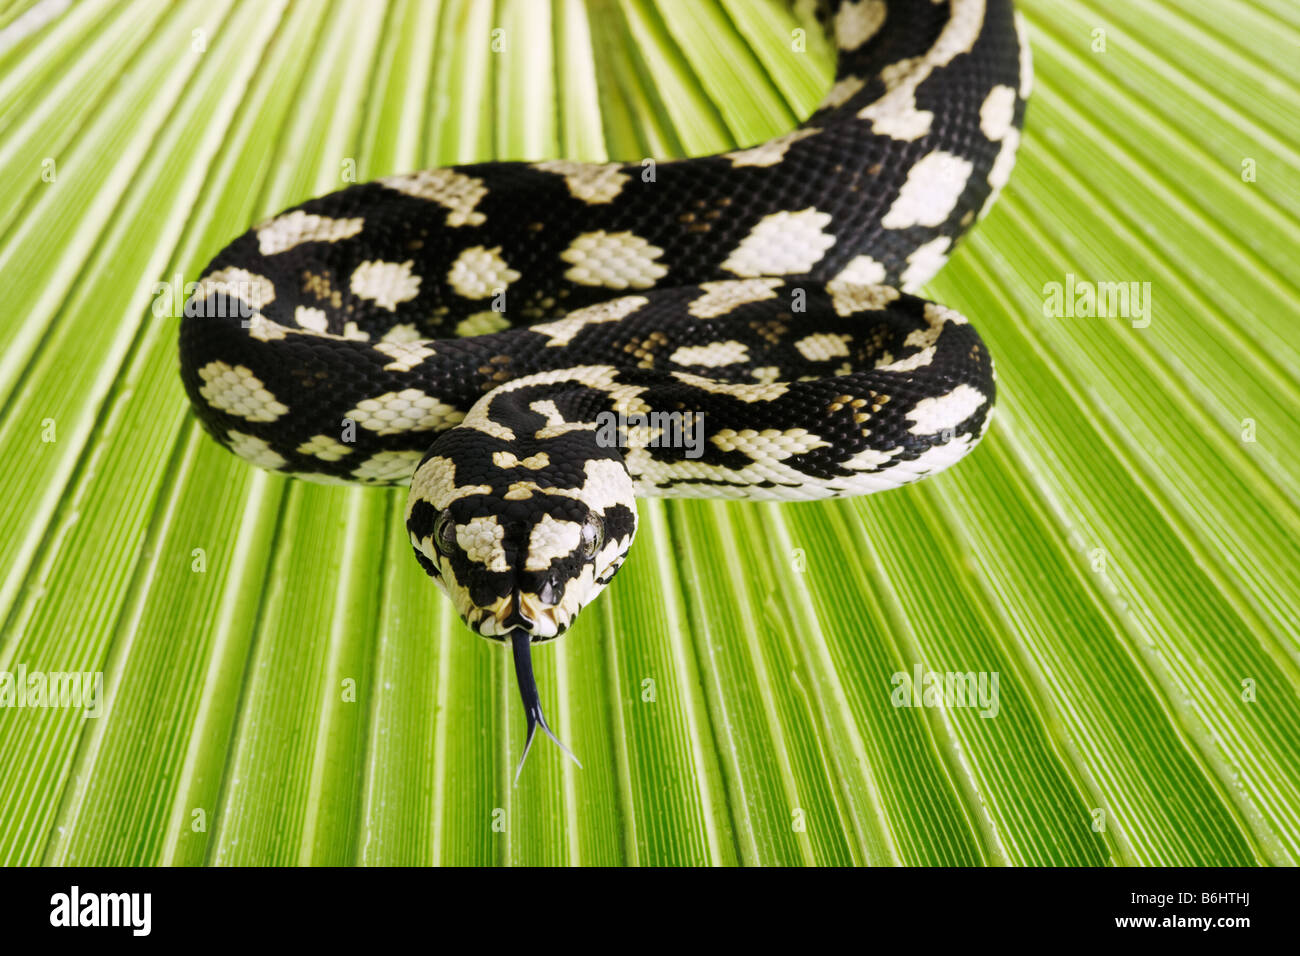 Jungle Carpet Pythons Morelia spilota cheynei Non venomous python species found in rainforests areas Australia - Stock Image